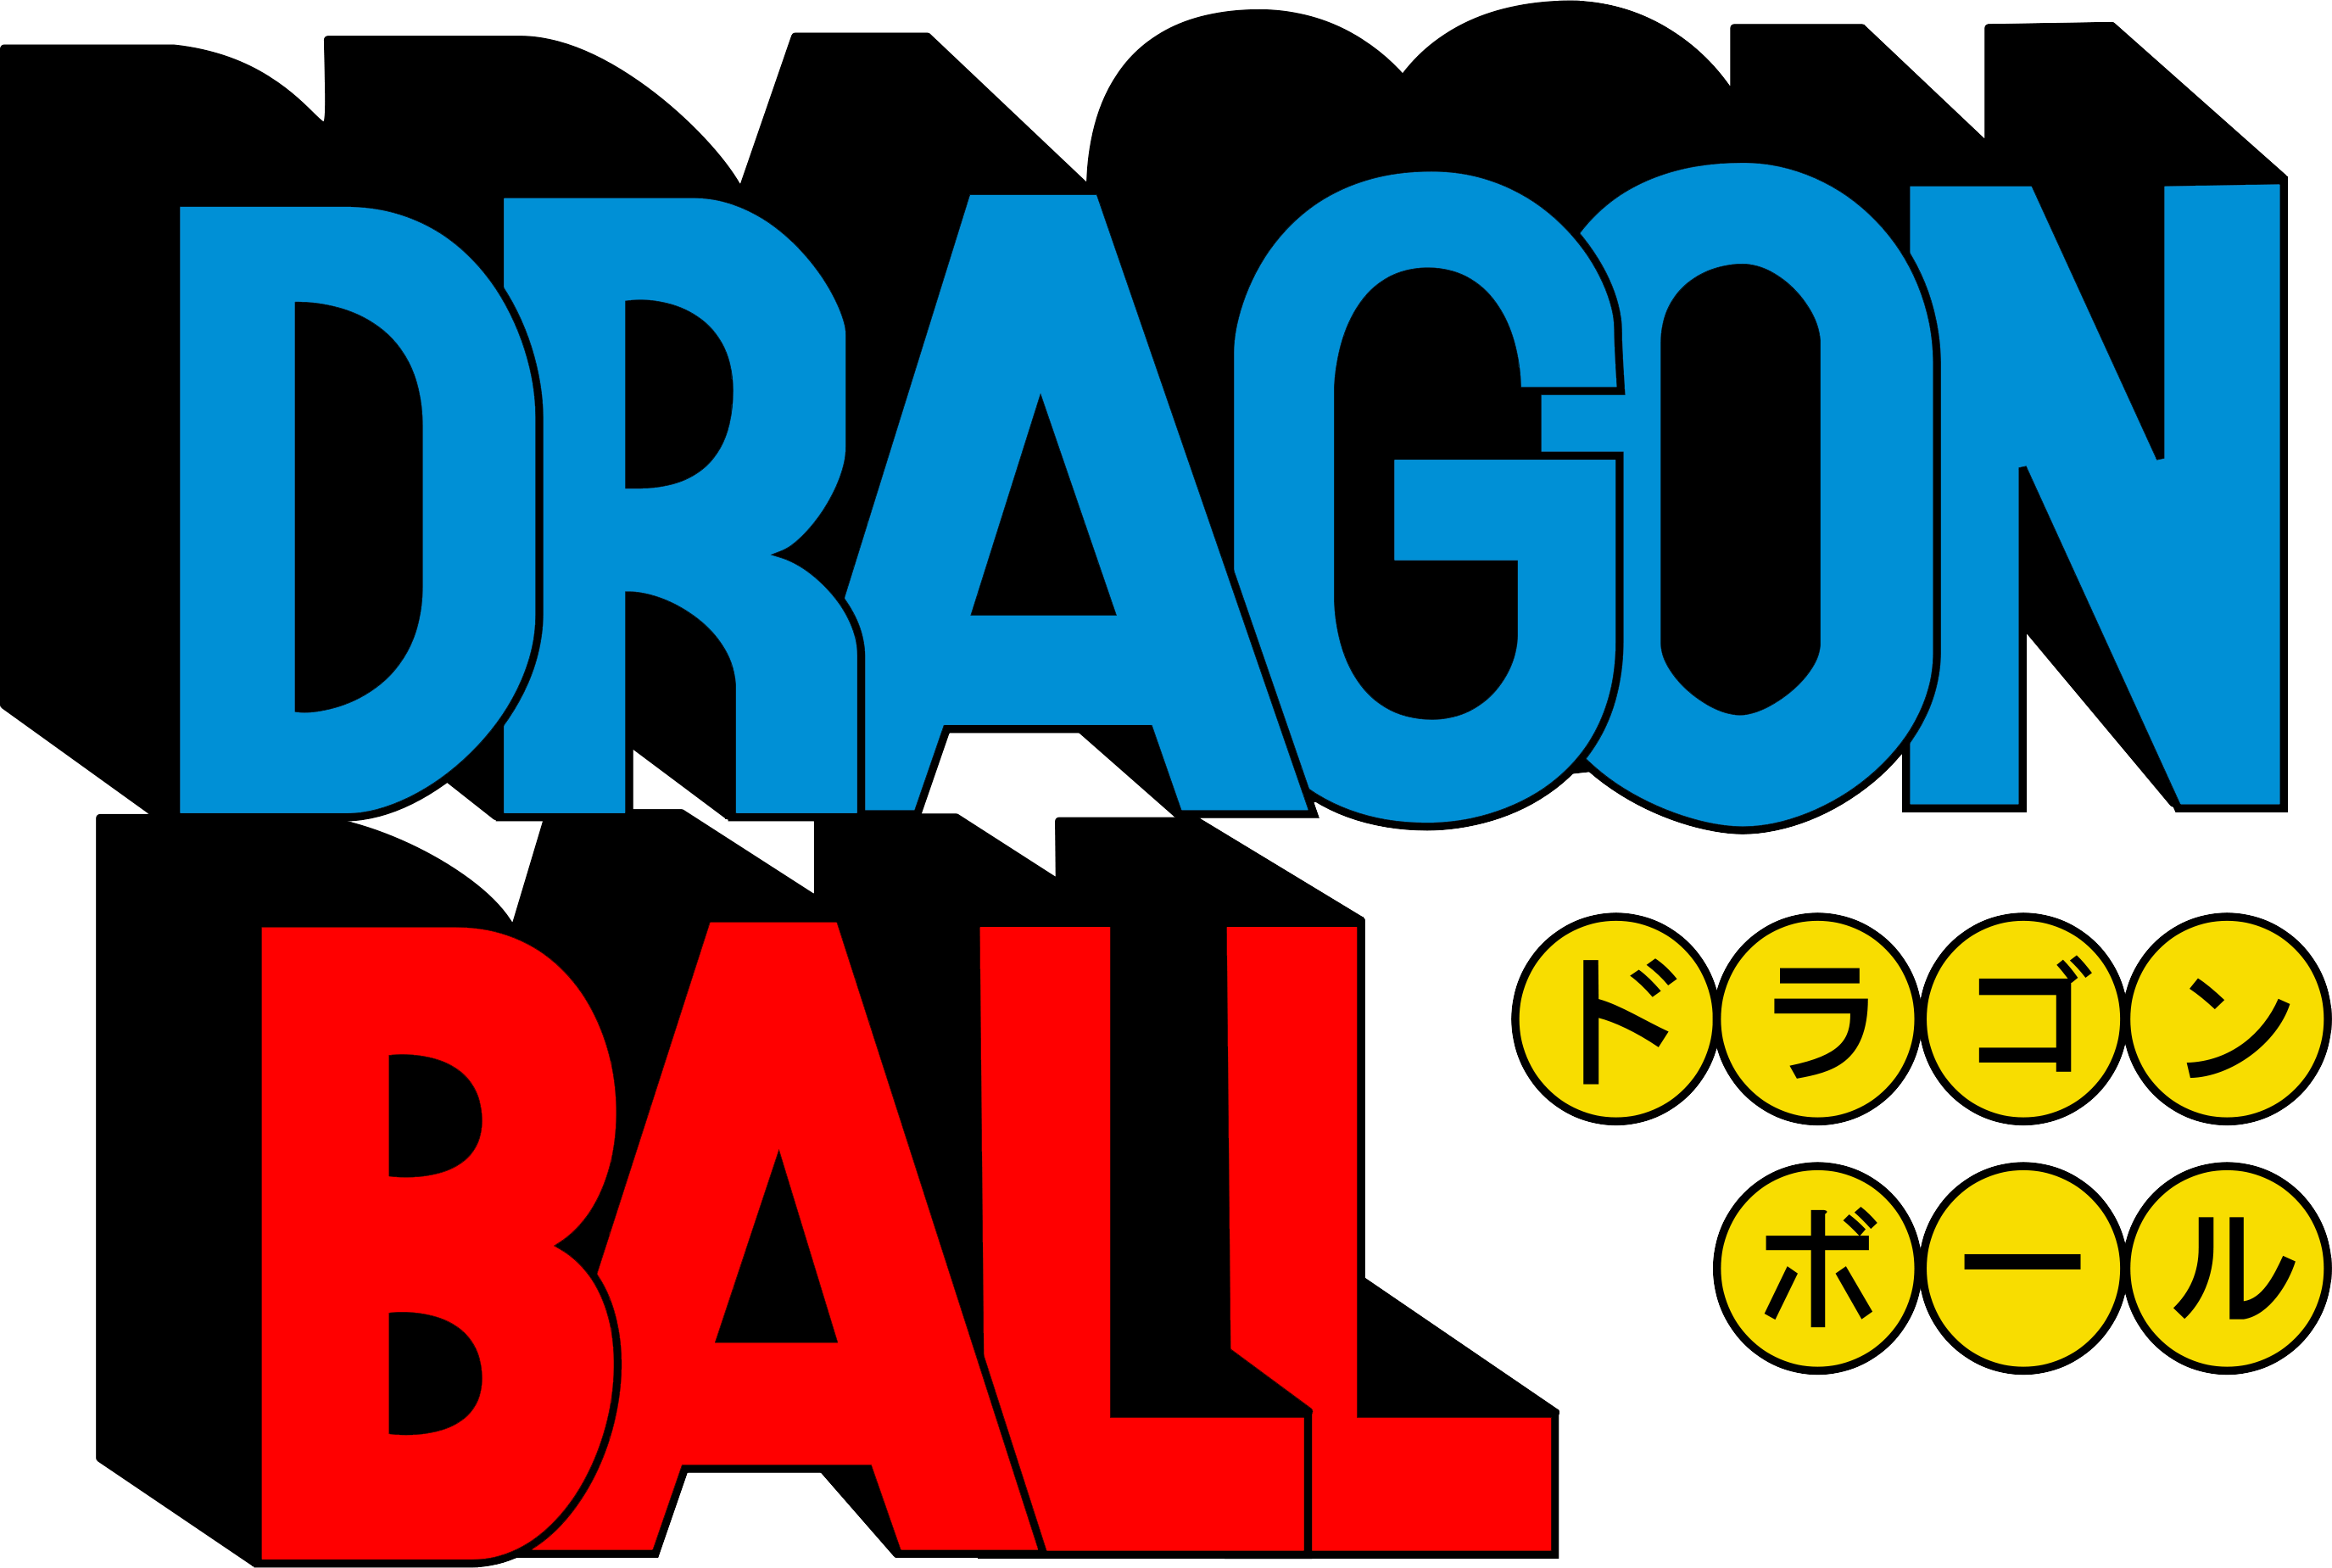 Dragon Ball (TV series) - Wikipedia